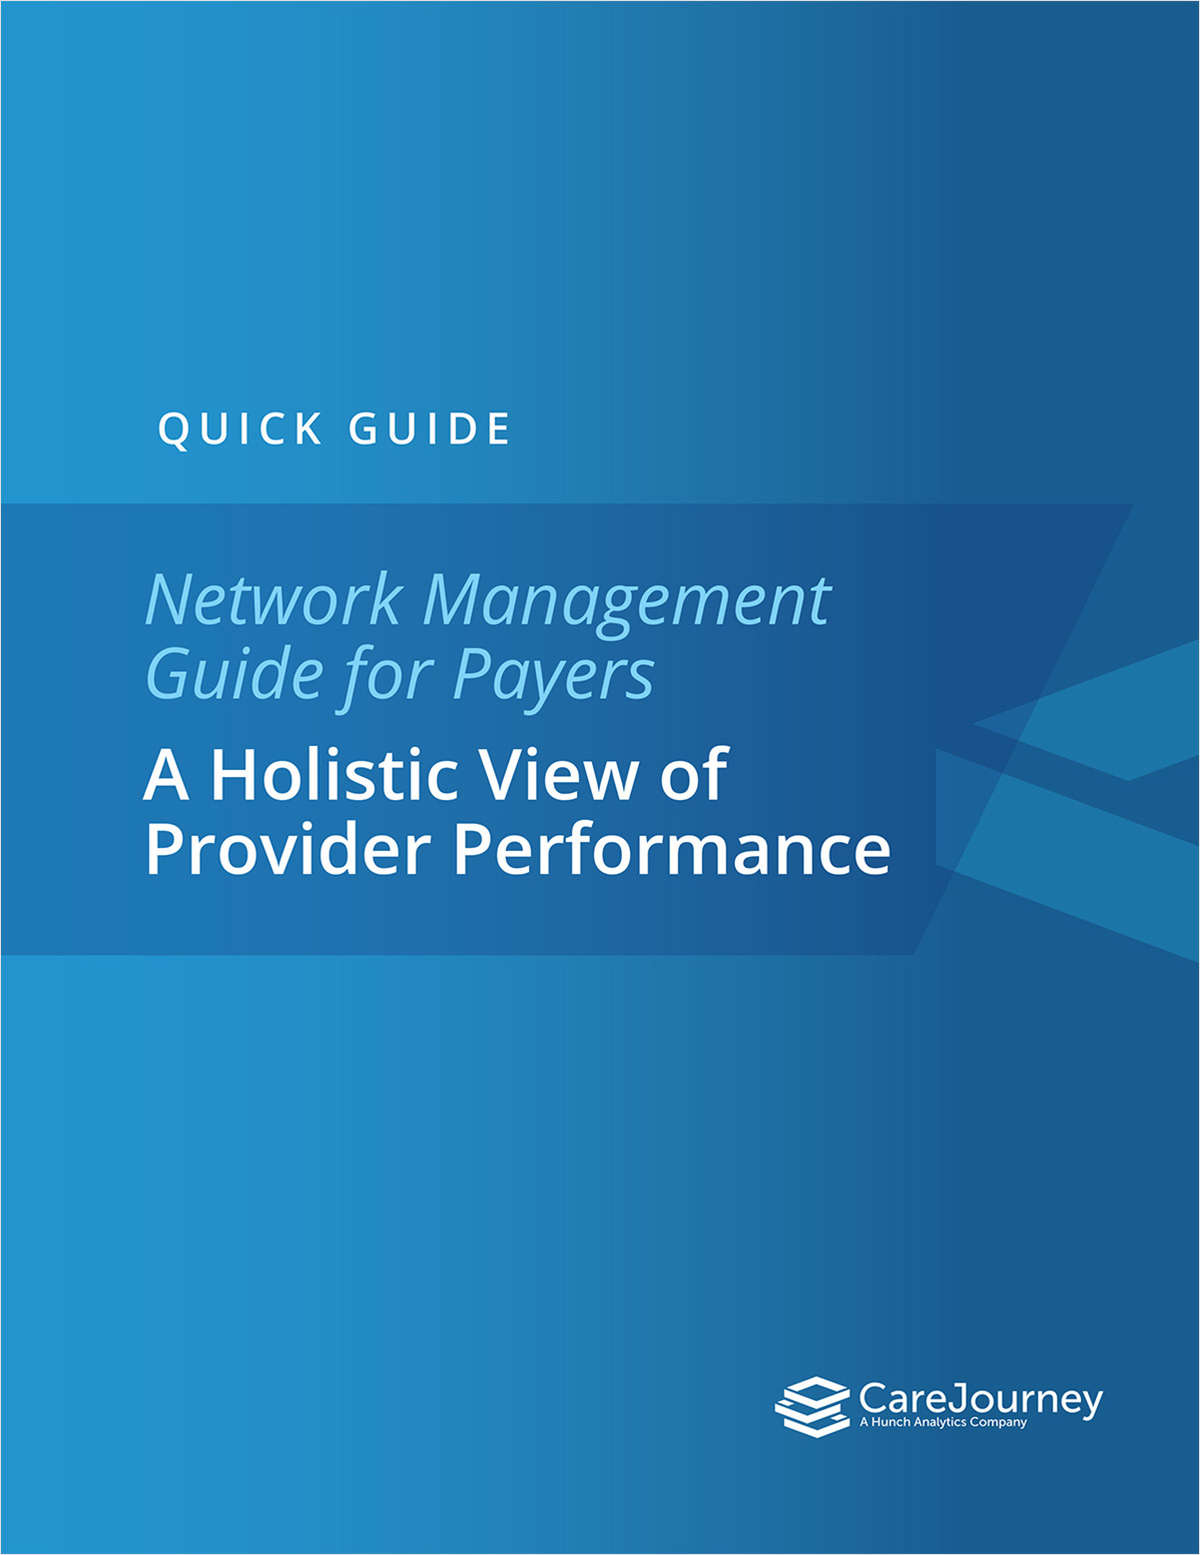 Network Management Guide for Payers